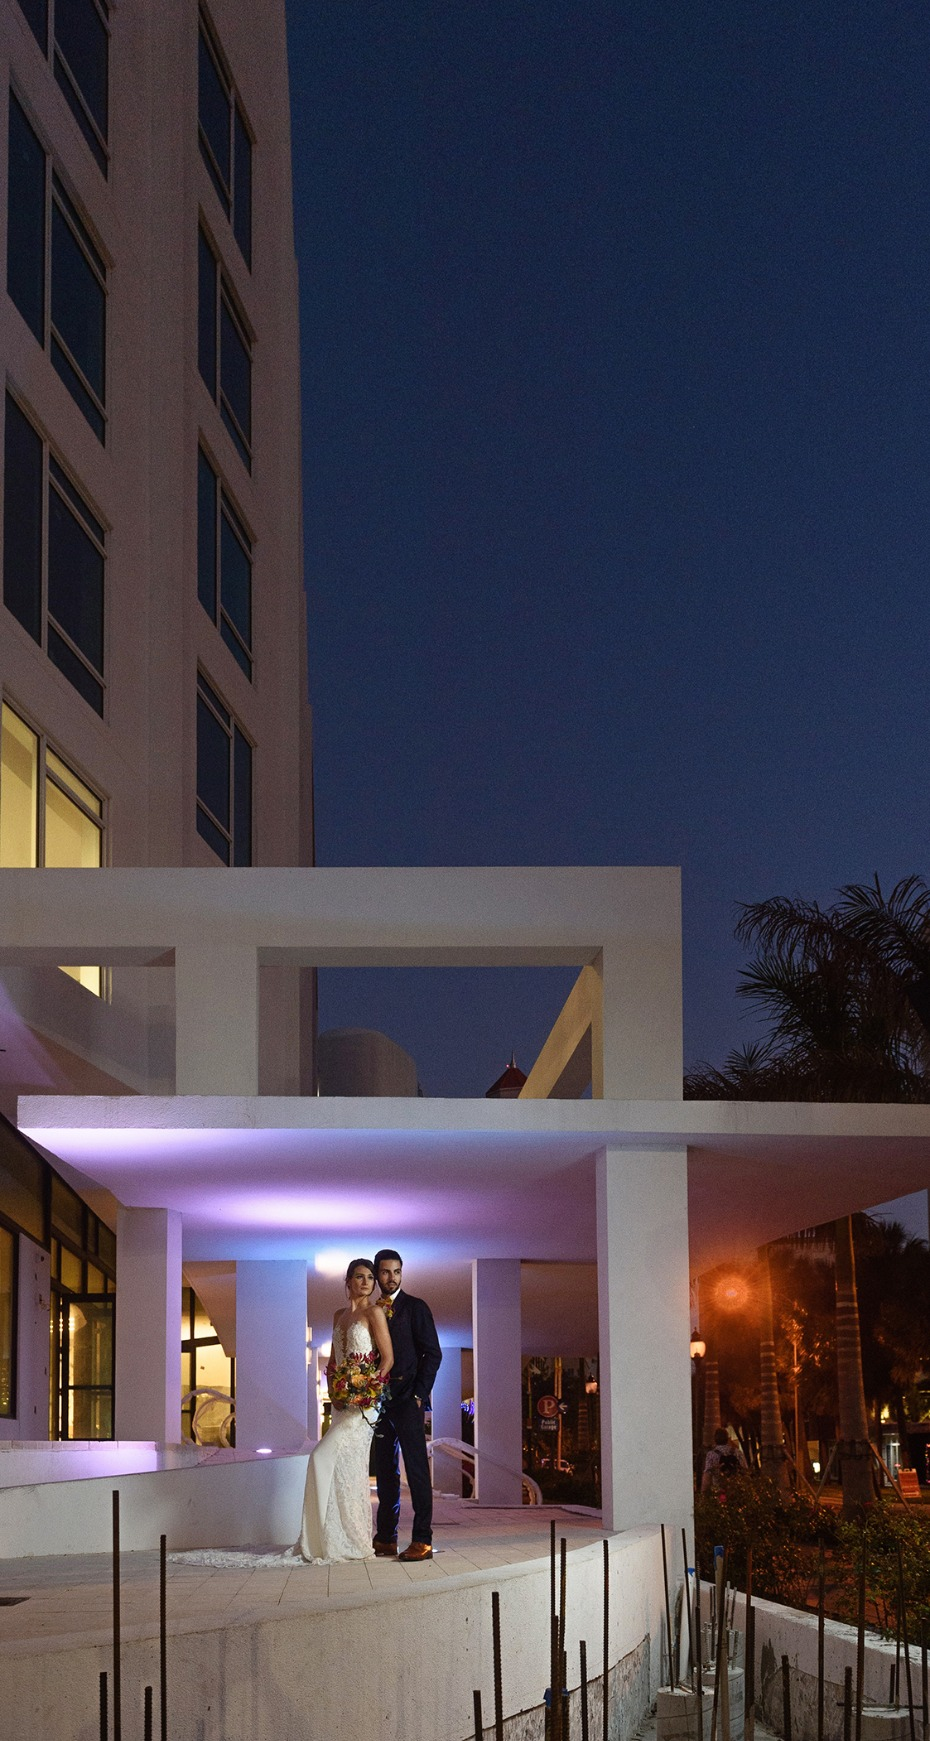 The Art Ovation Hotel in Florida is a hot new wedding venue